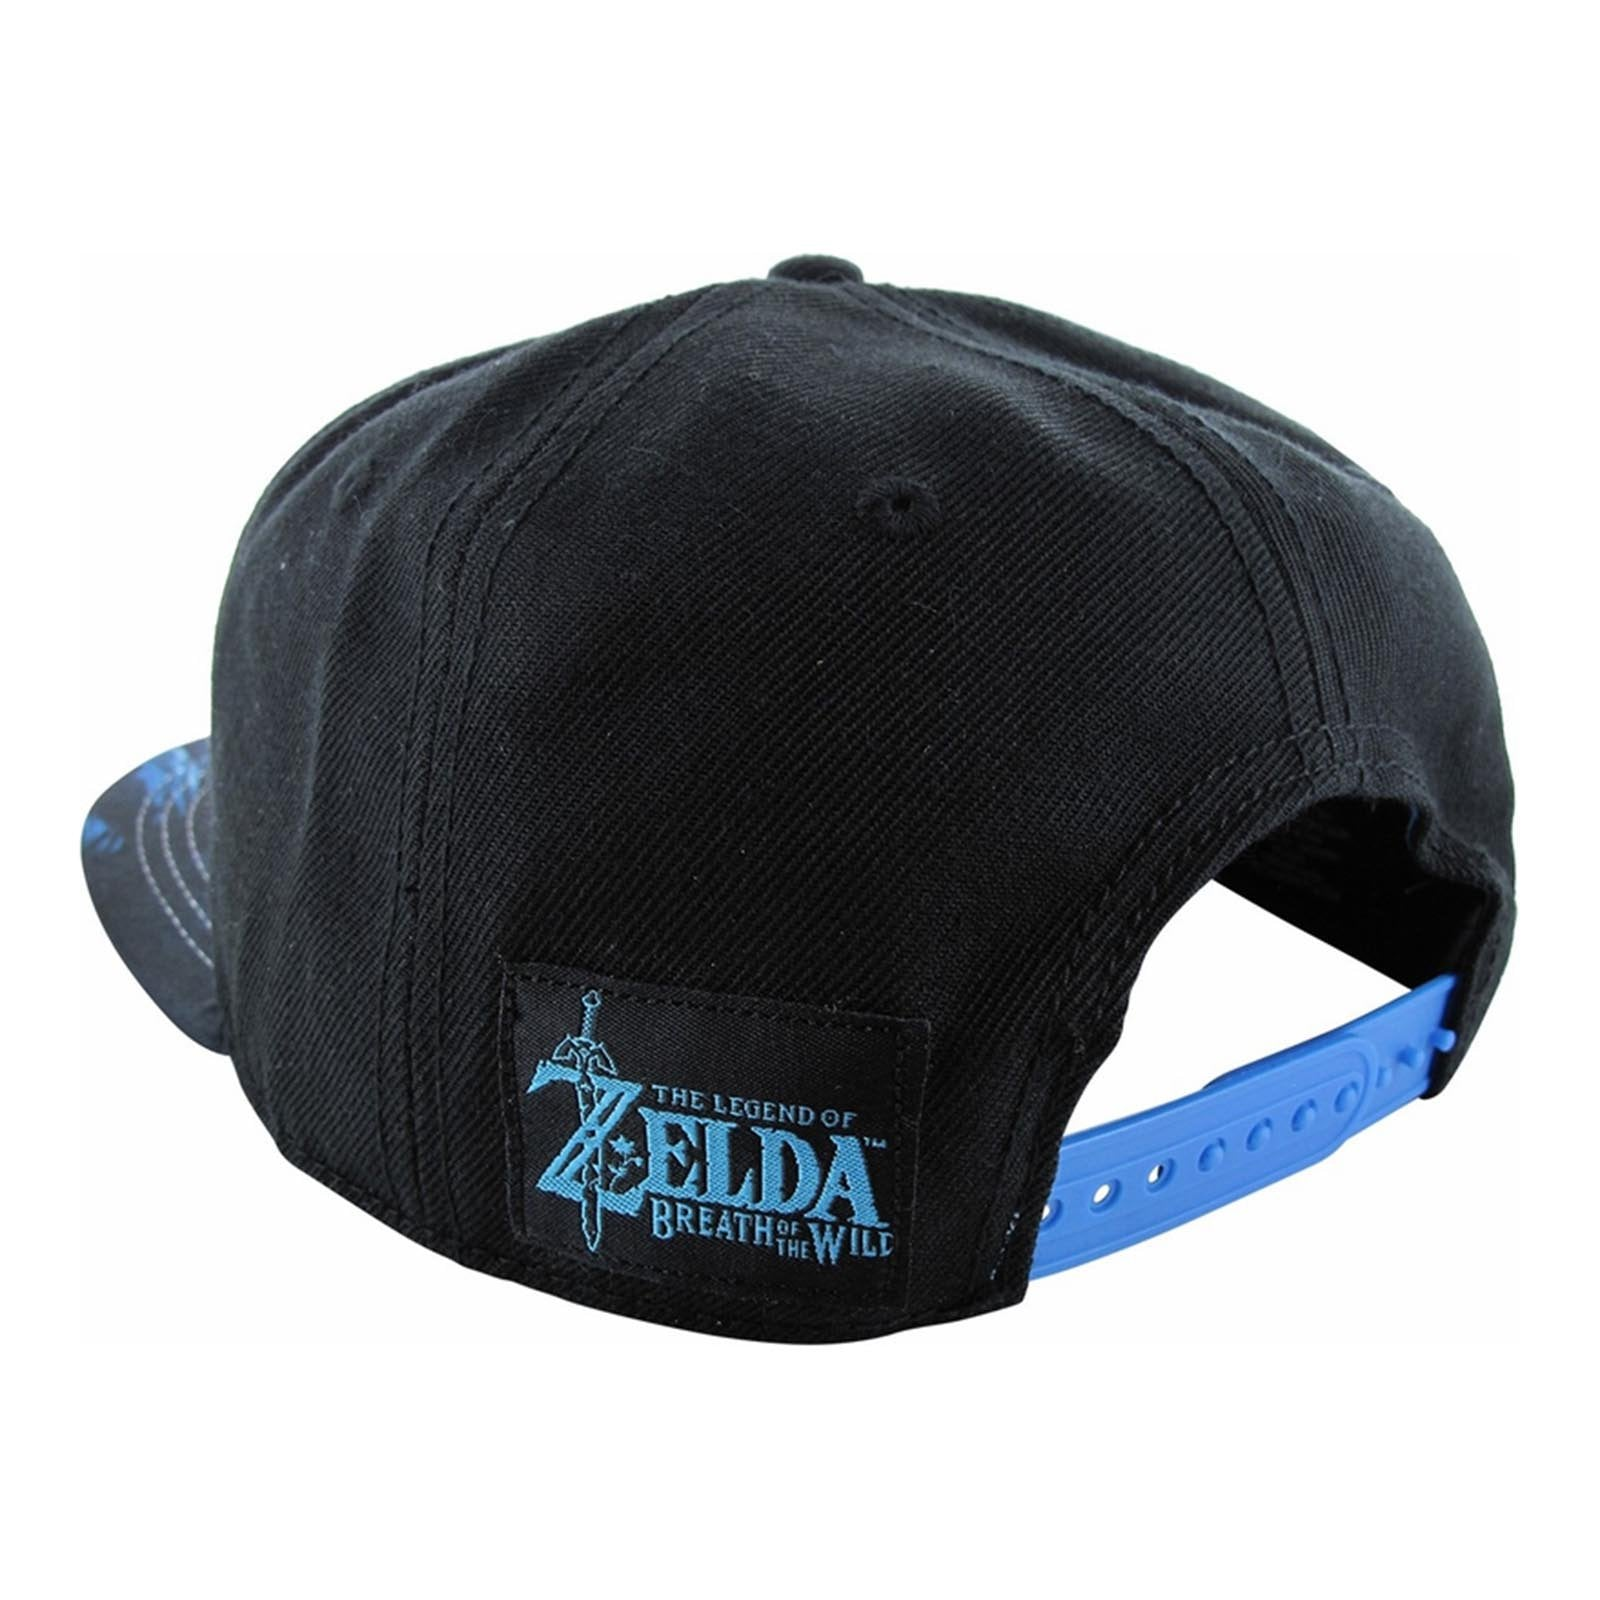 detailed look 4fa15 71eb4 Zelda Breath of The Wild Shield Snapback Hat